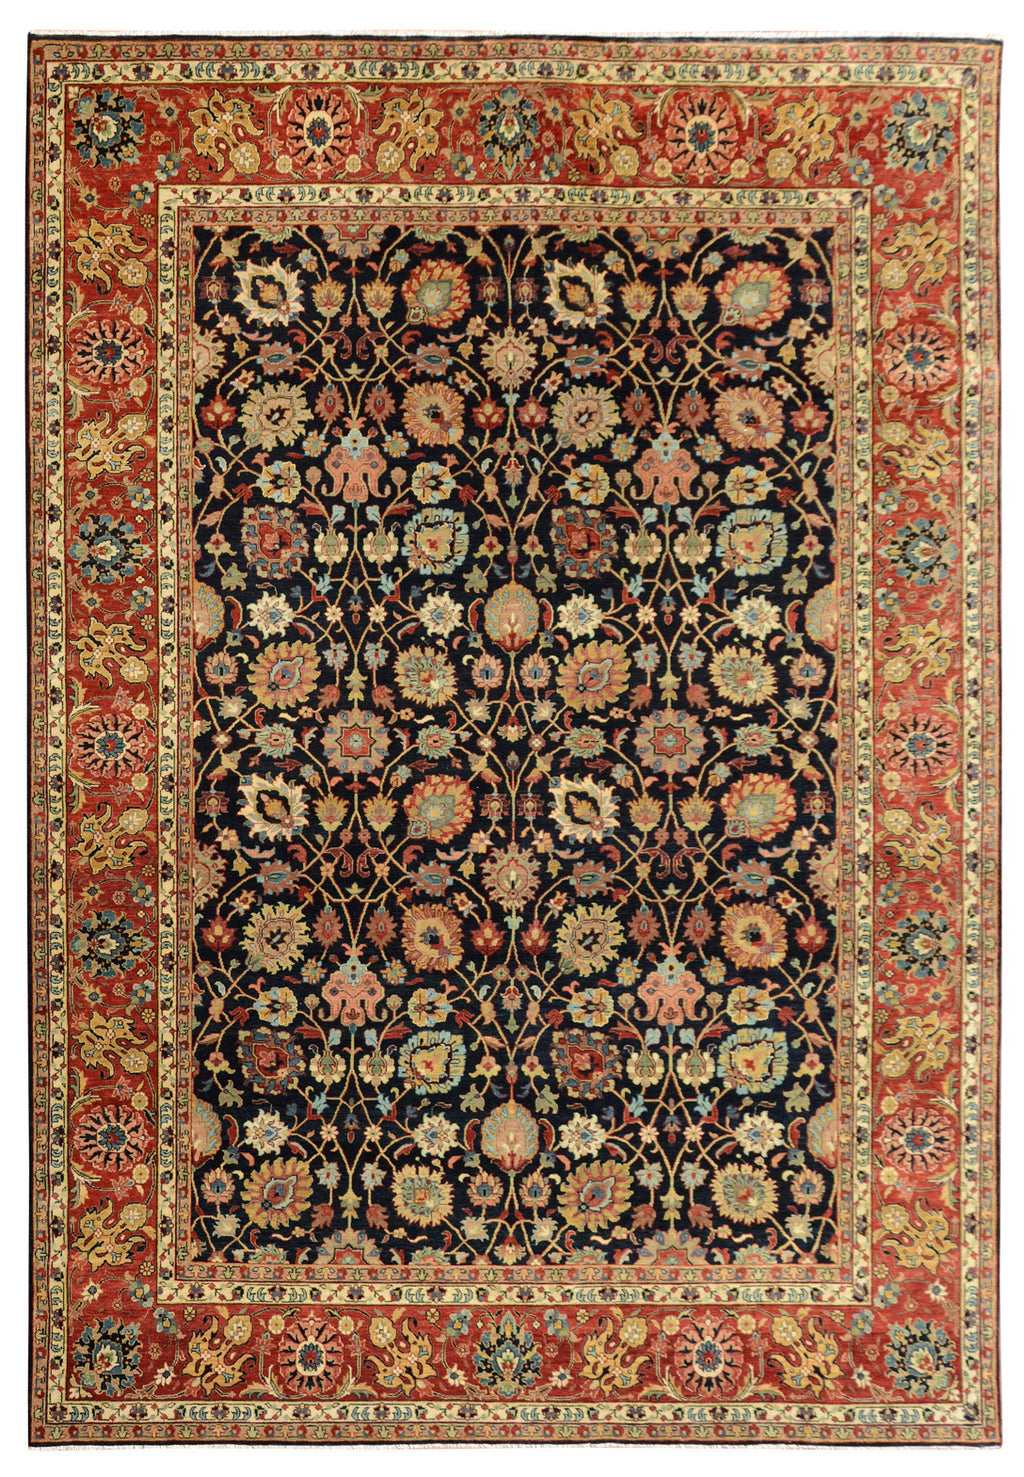 Sera Collection Wool Rug Navy/Red 9'1x12'1